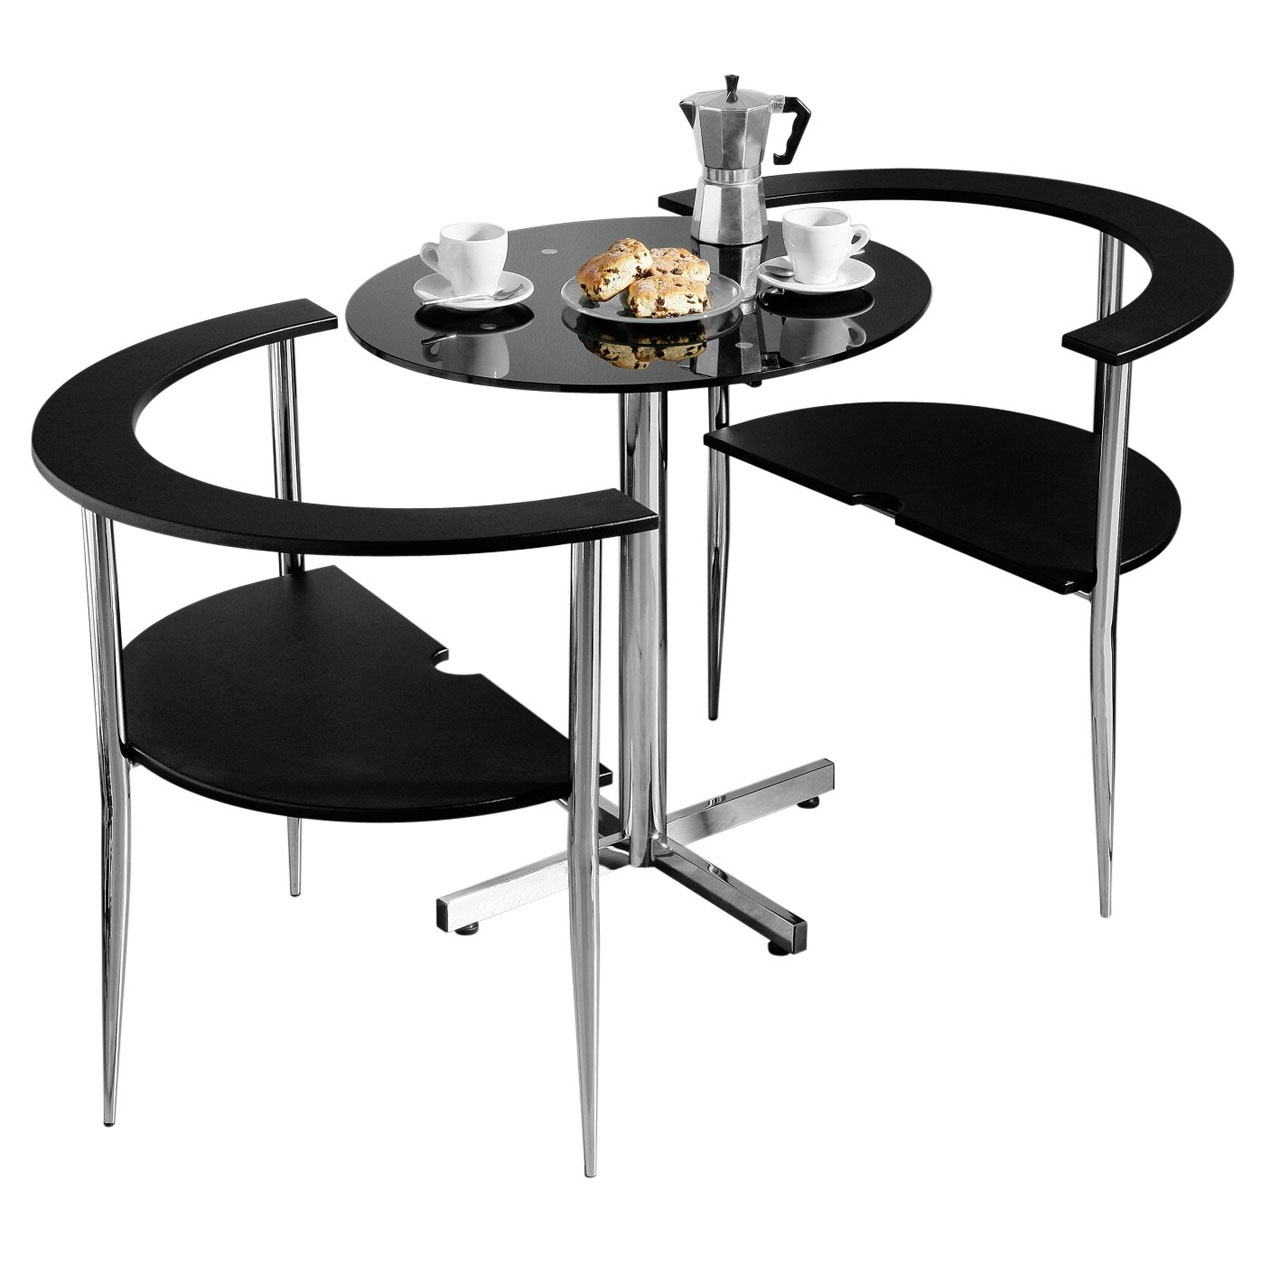 2017 3Pc Round Love Dining Set Black Tempered Glass Table Top 2 Chairs Throughout Two Seat Dining Tables (Gallery 8 of 25)